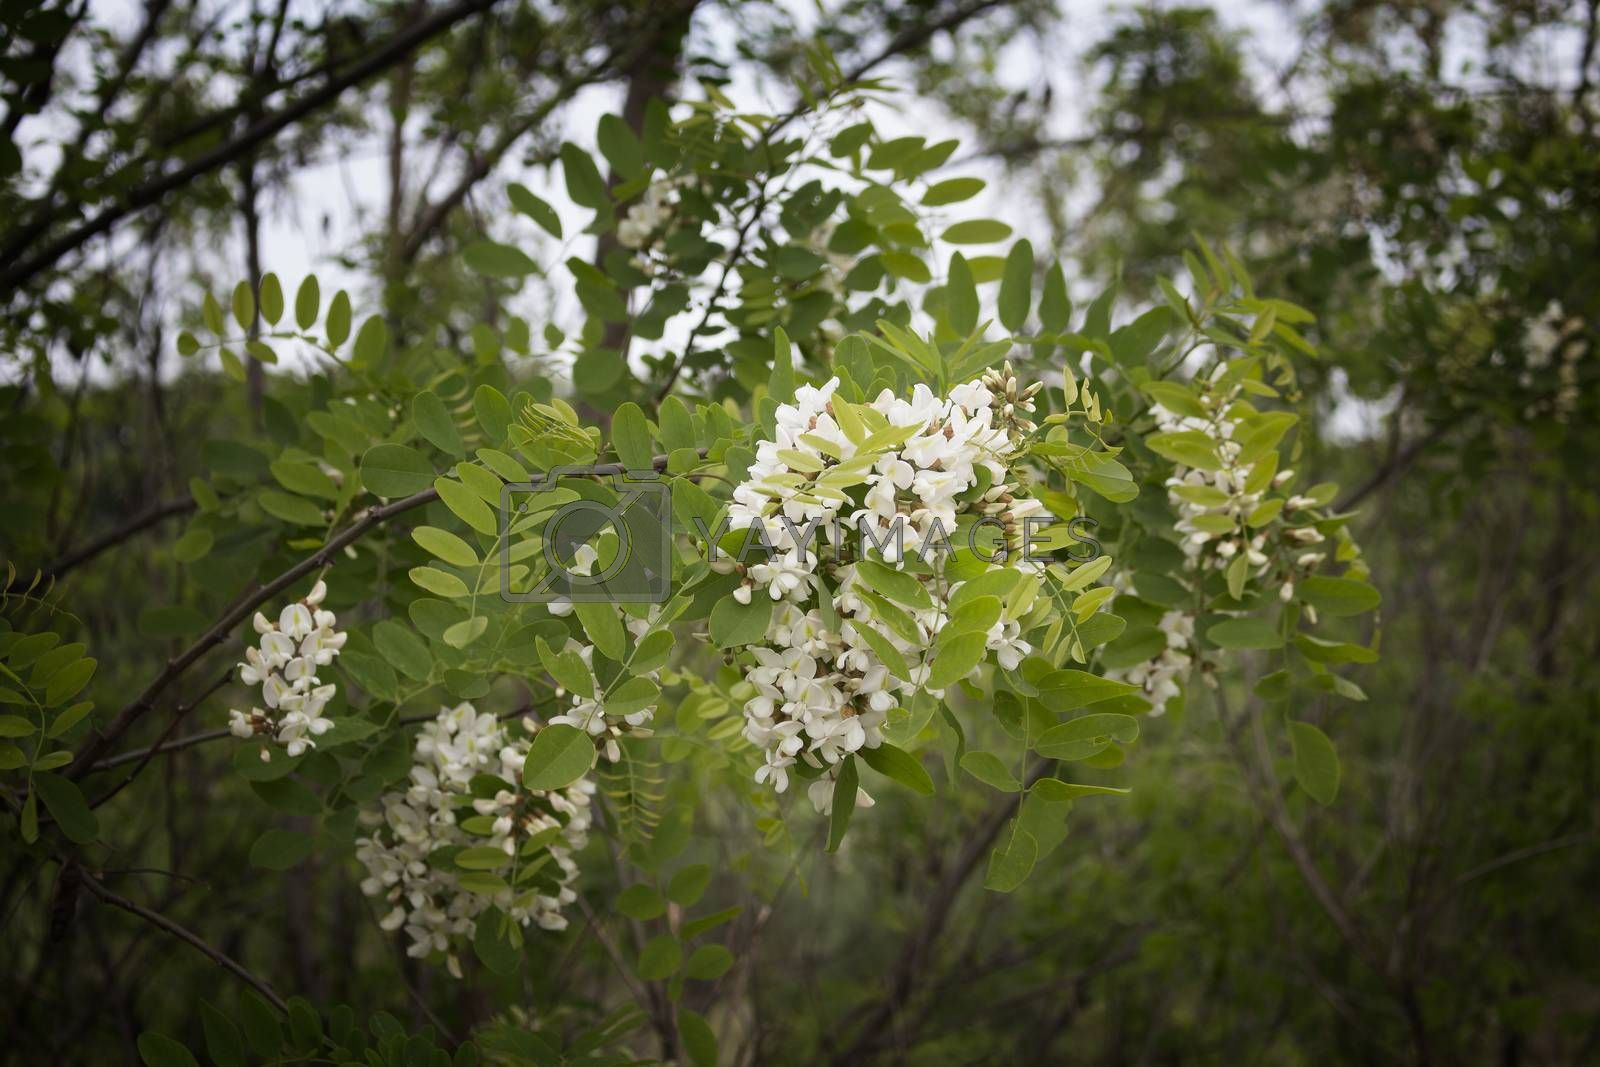 White flowers on green trees in Italian countryside